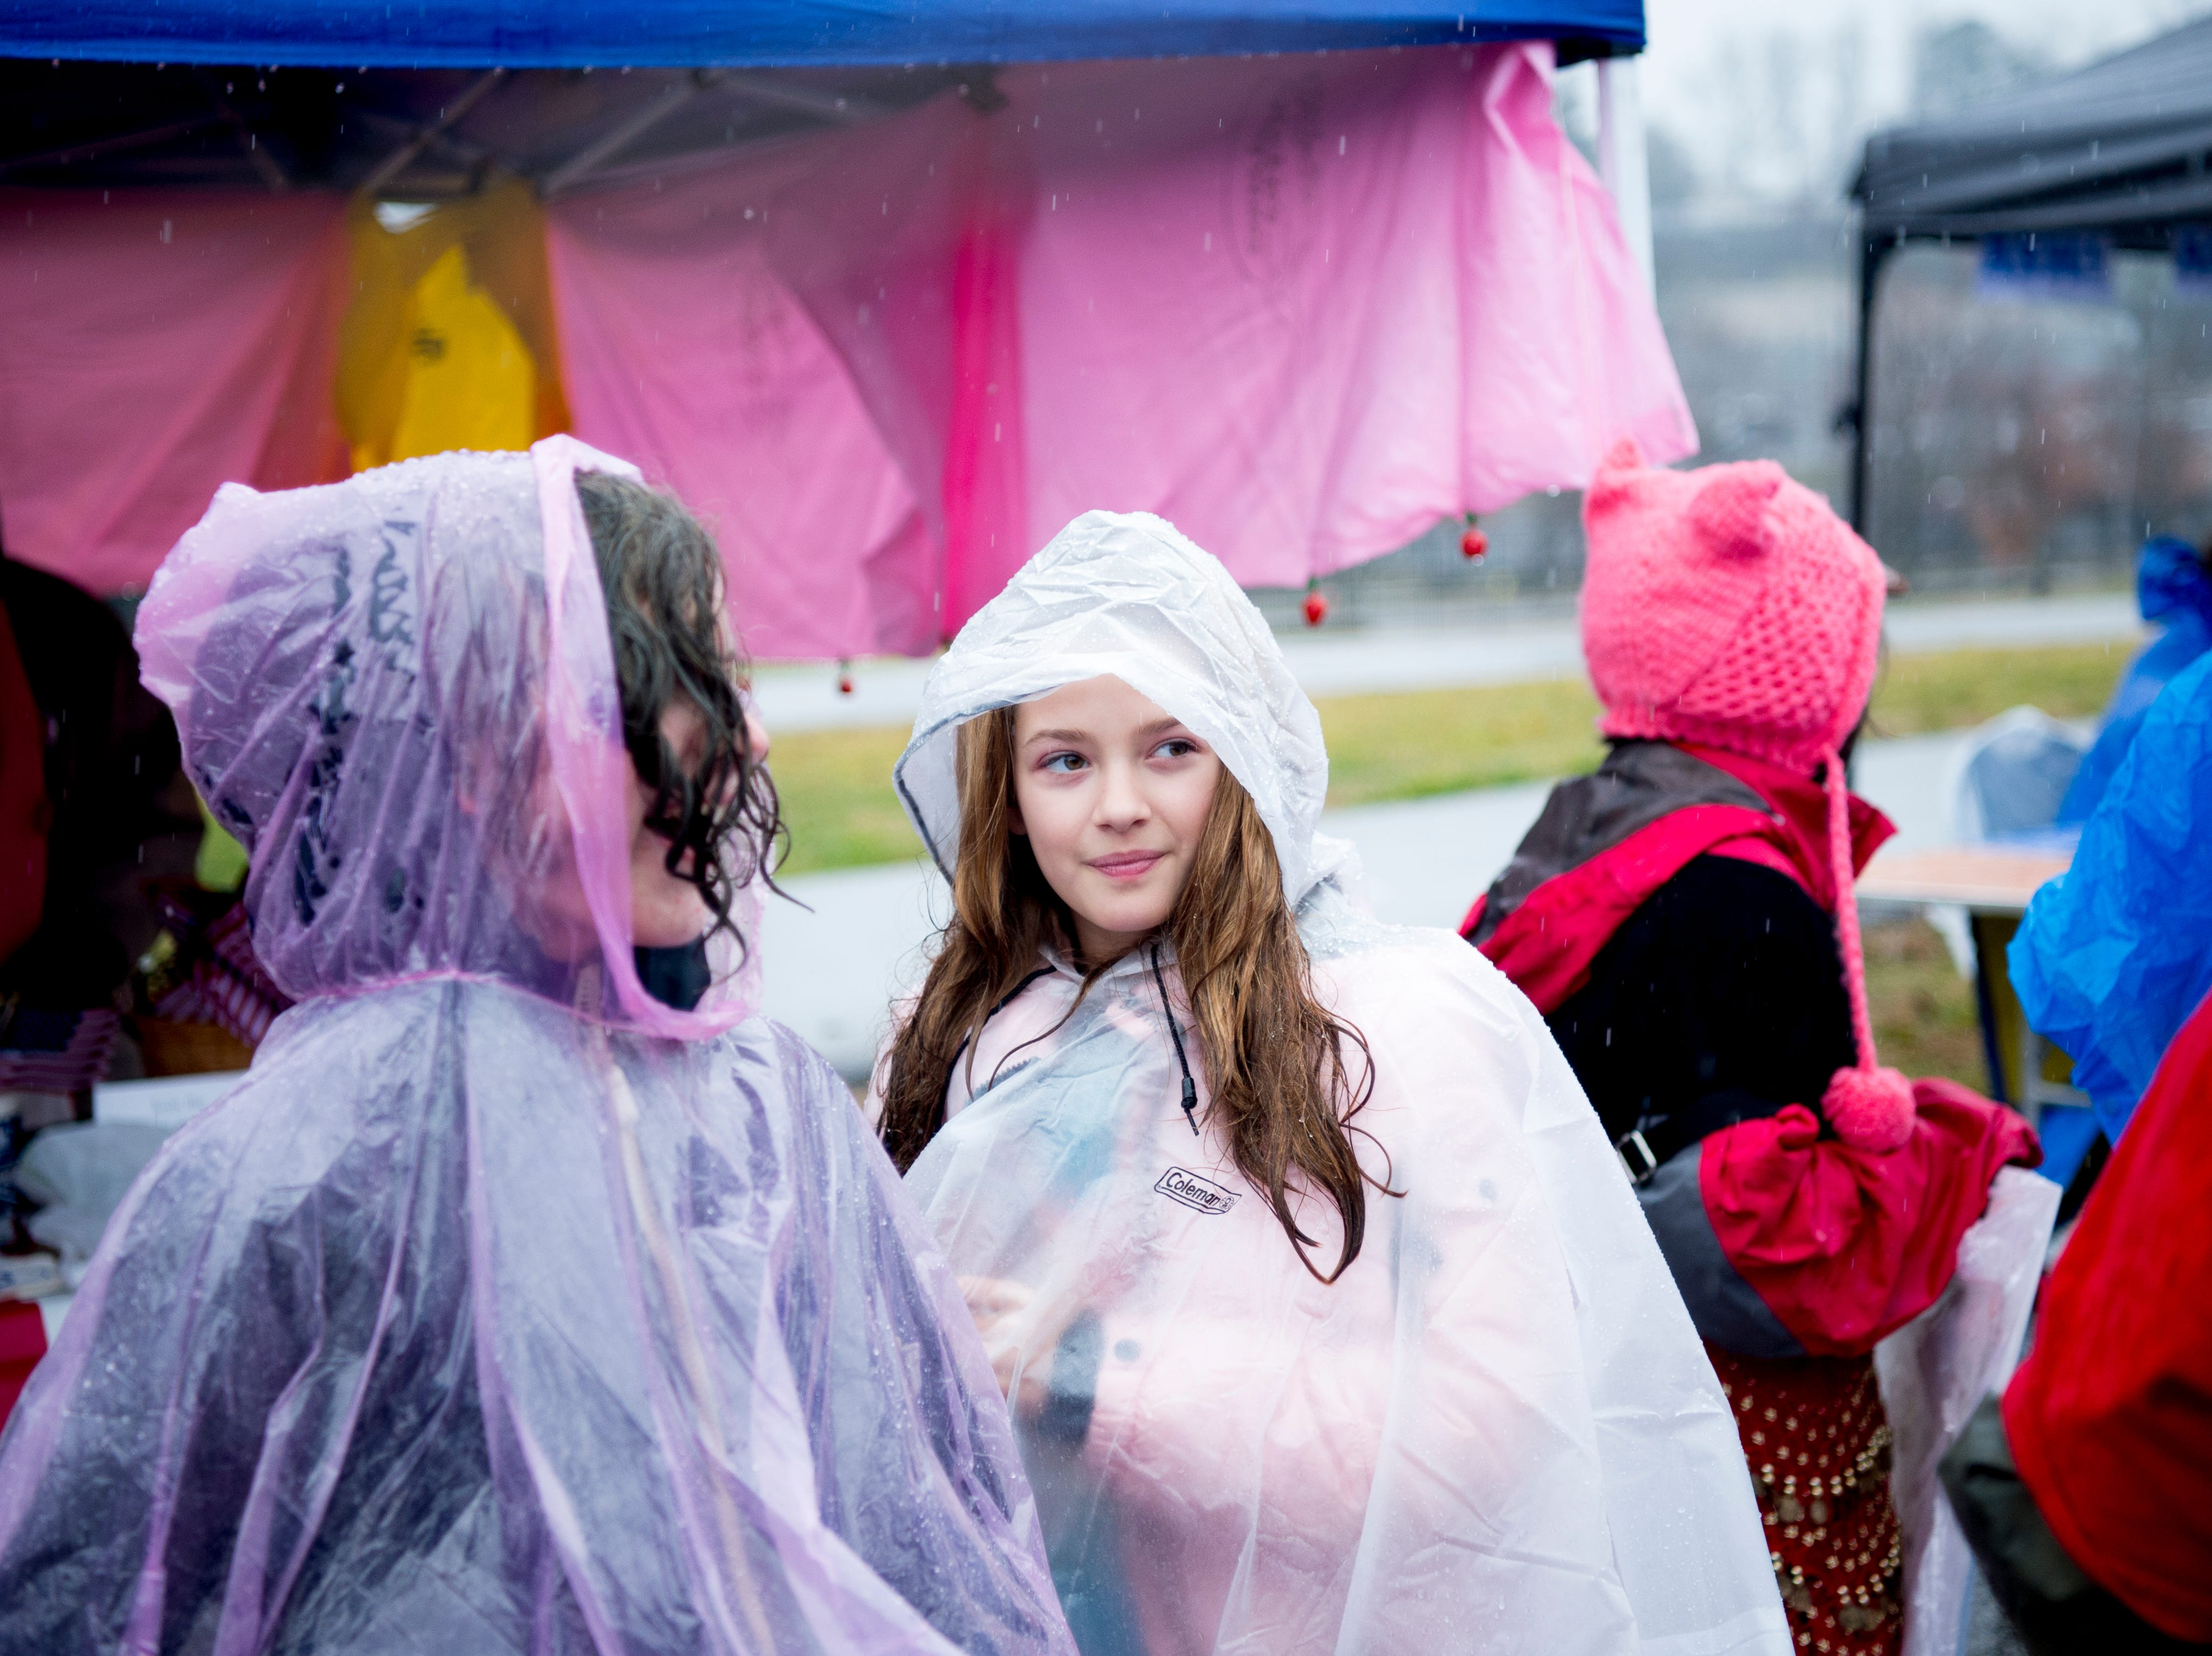 Attendees walk through the organization tents at the 2019 Knoxville Women's March at Chilhowee Park in Knoxville, Tennessee on Saturday, January 19, 2019.